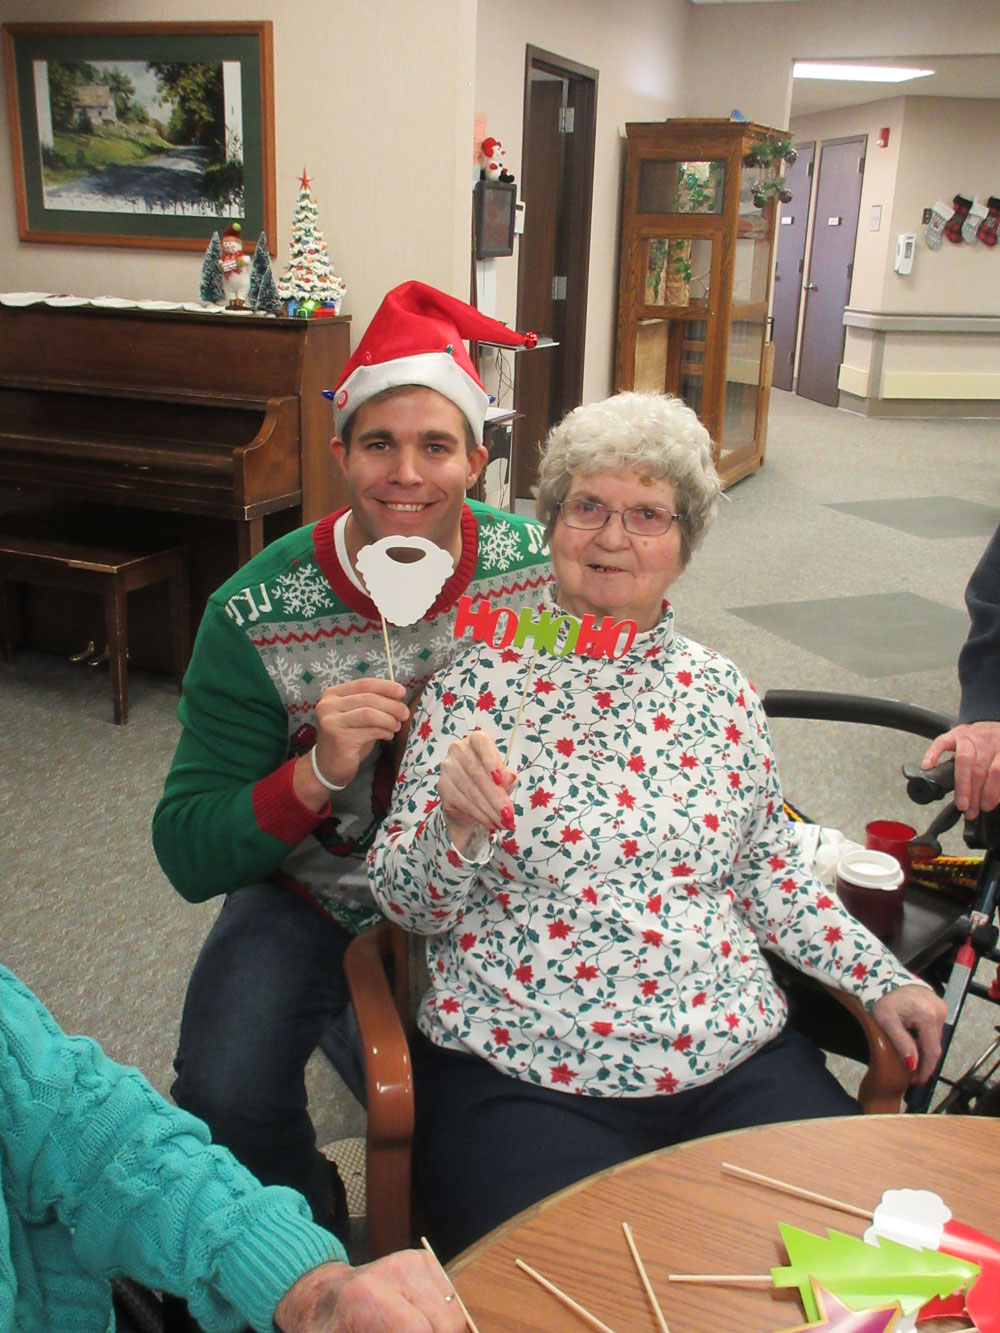 A resident from Immanuel Fontenelle senior living community poses with an employee from Physician's Mutual during a holiday party.